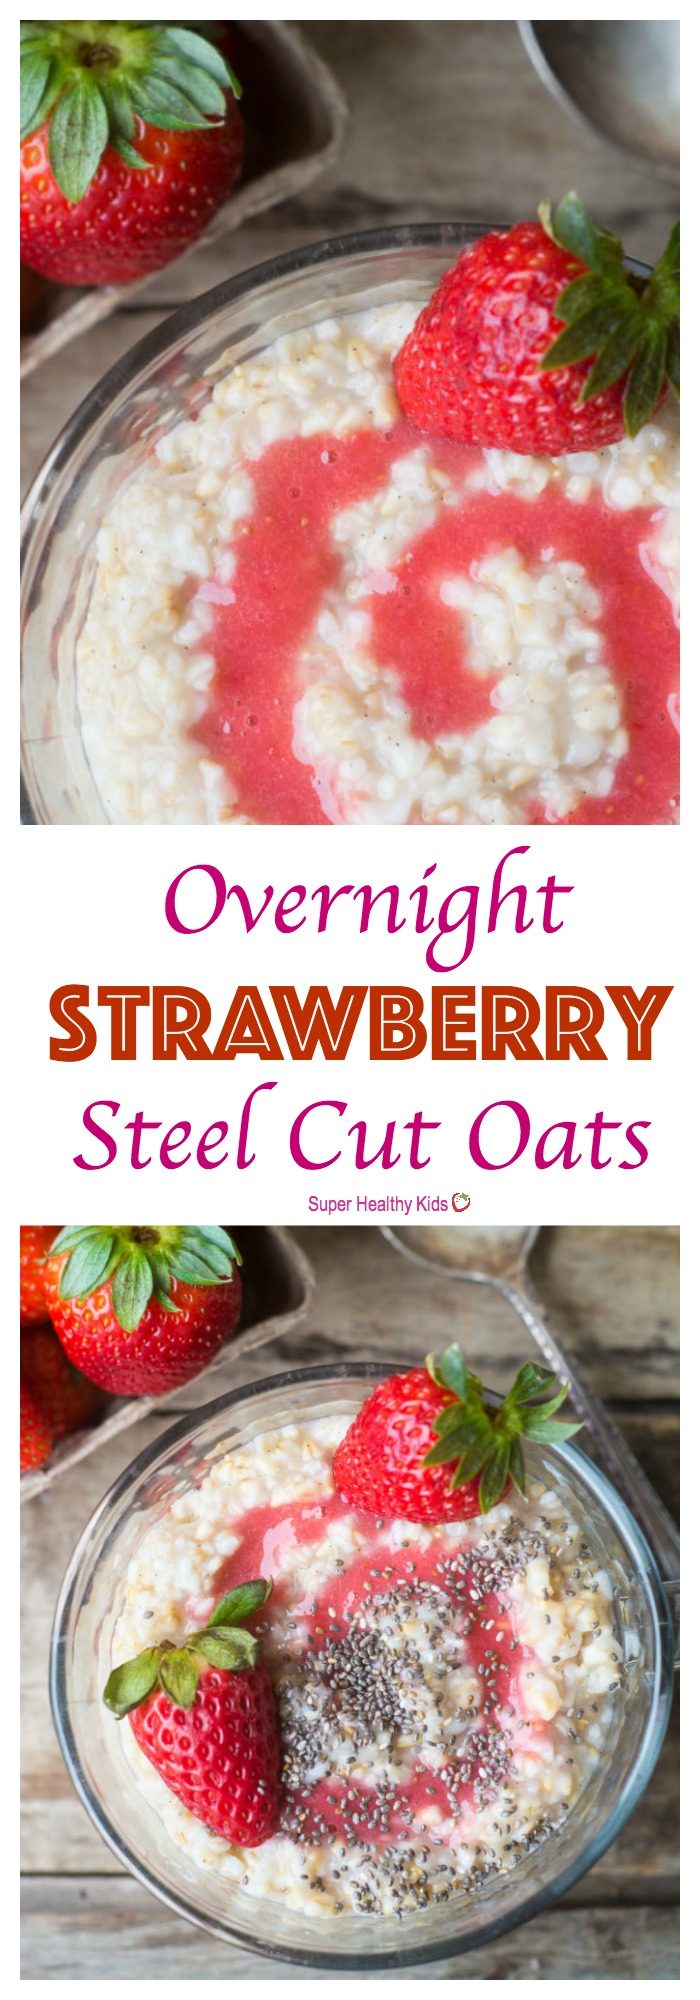 FOOD - Overnight Strawberry Steel Cut Oats. An easy, healthy breakfast made for busy mornings and hungry families! http://www.superhealthykids.com/overnight-strawberry-steel-cut-oats/